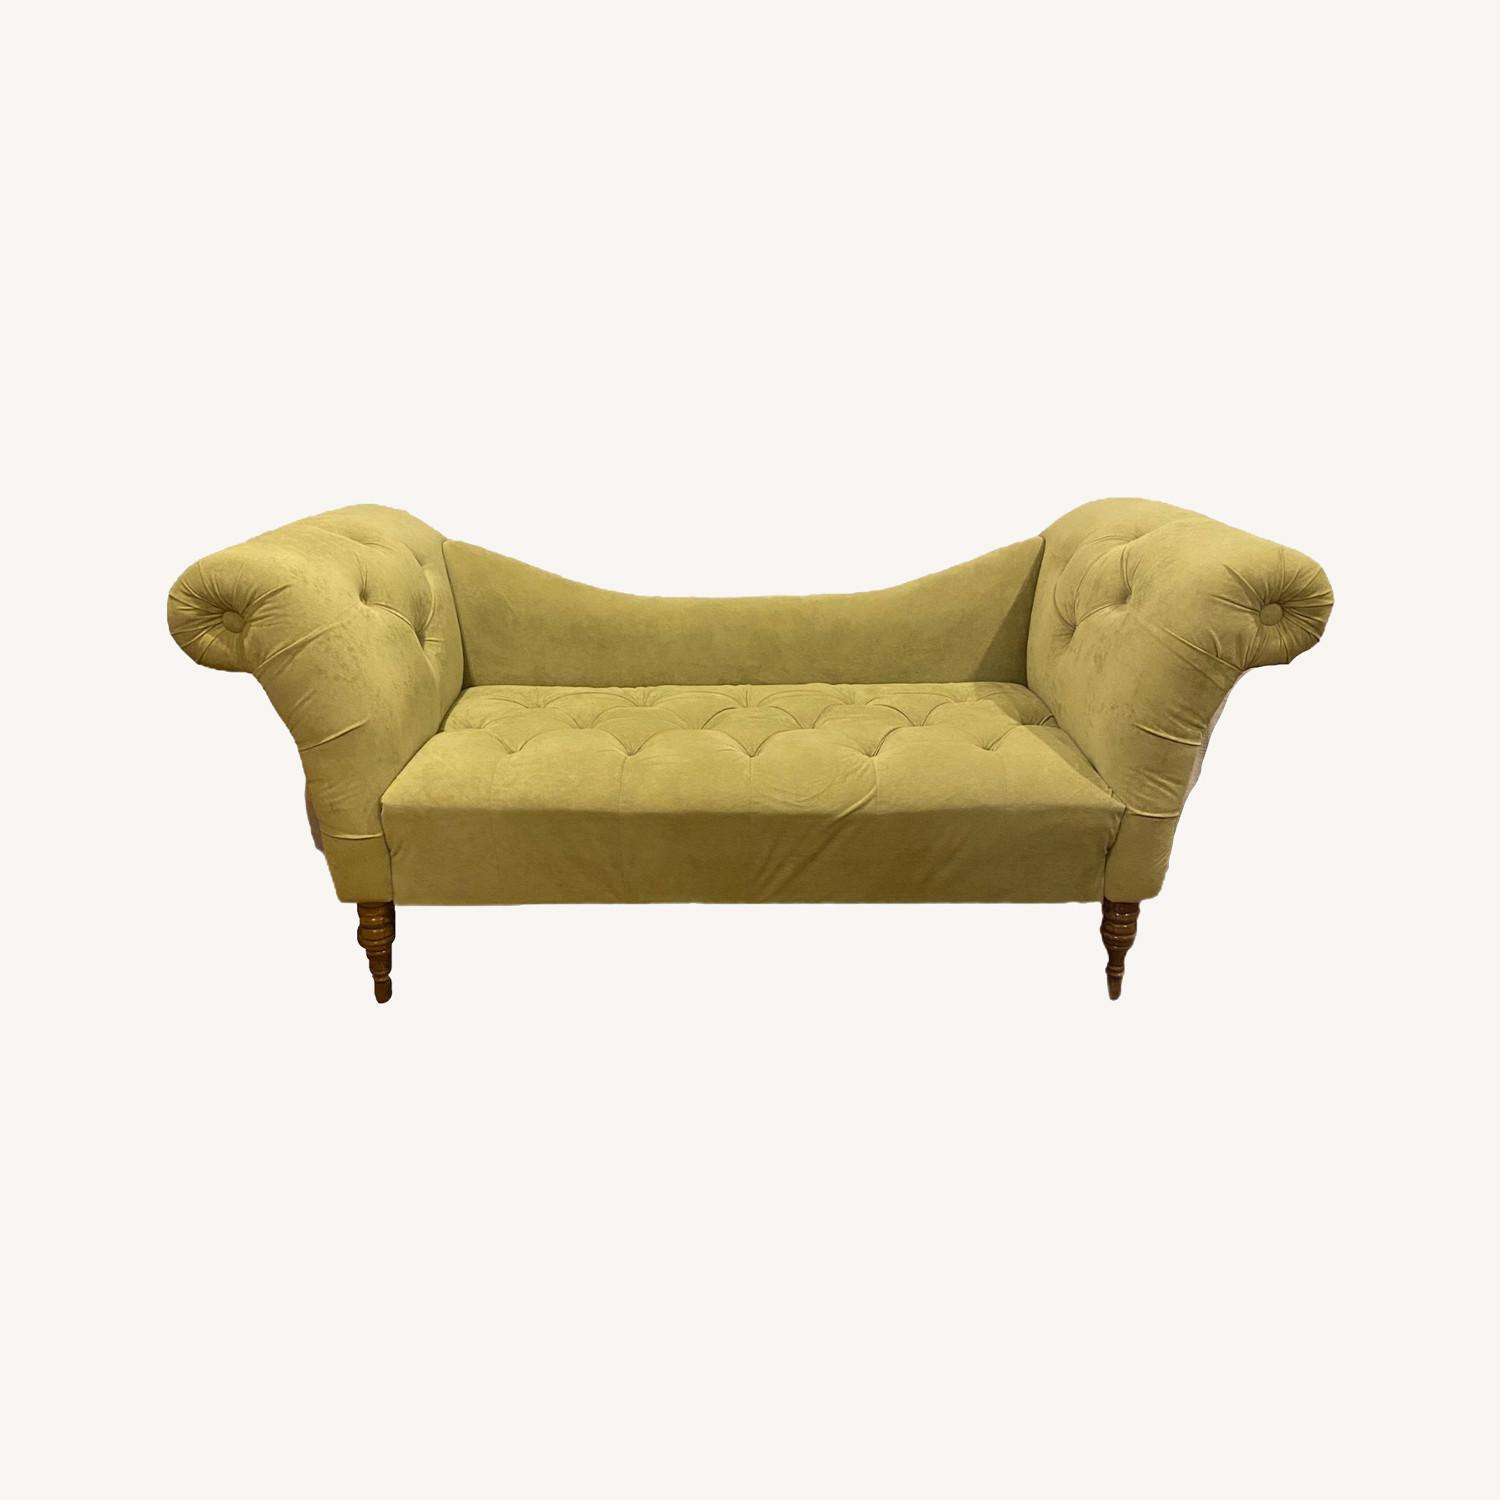 Urban Outfitters Velvet Fainting Couch Green Sofa - image-0